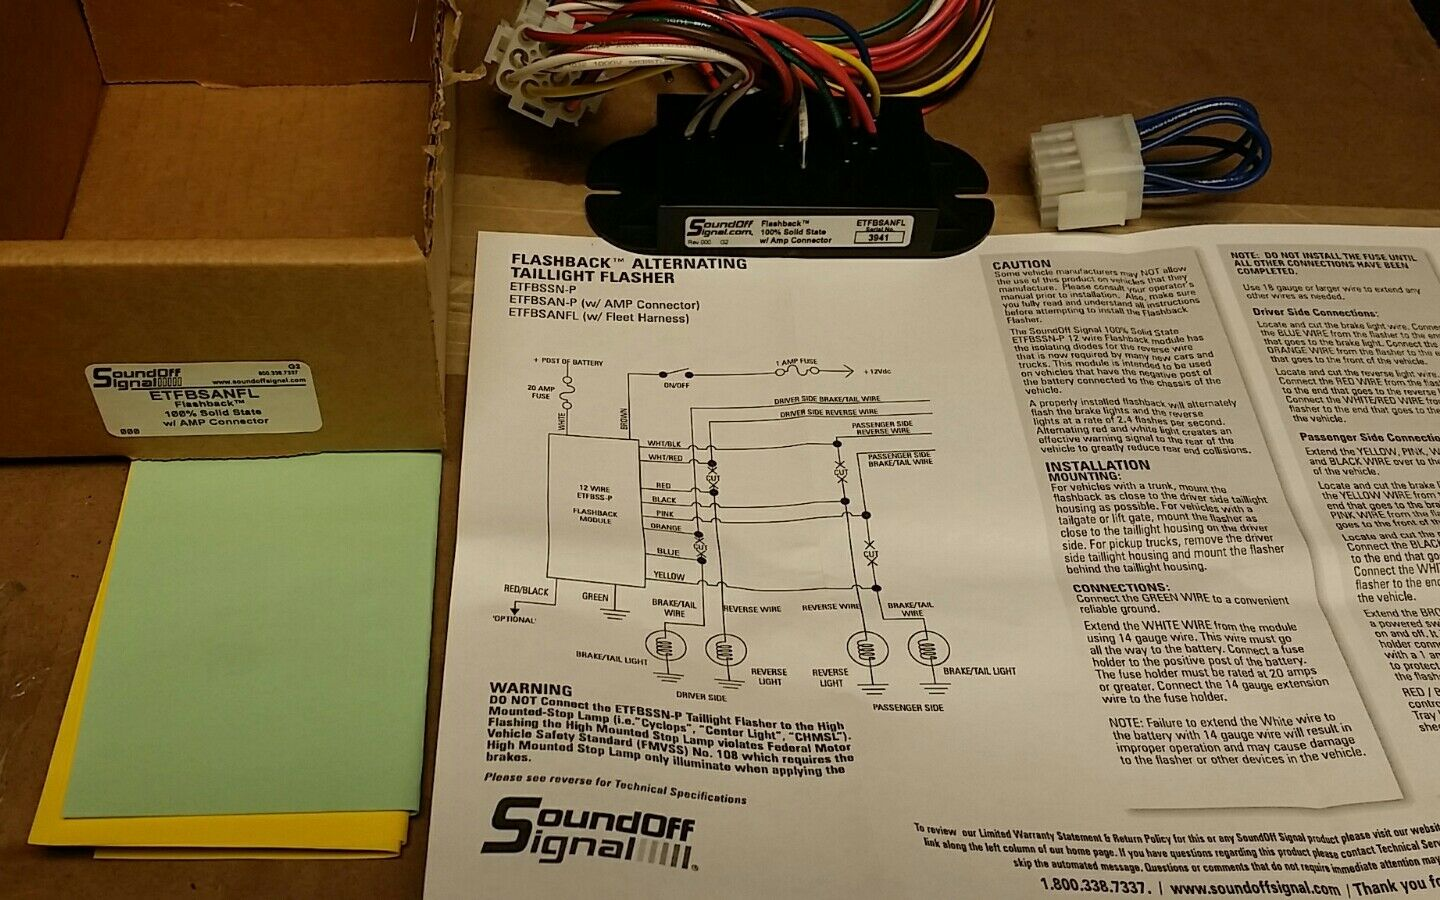 1 of 5Only 1 available New SoundOff Signal Flashback Alternating Taillight  Flasher ETFBSANFL